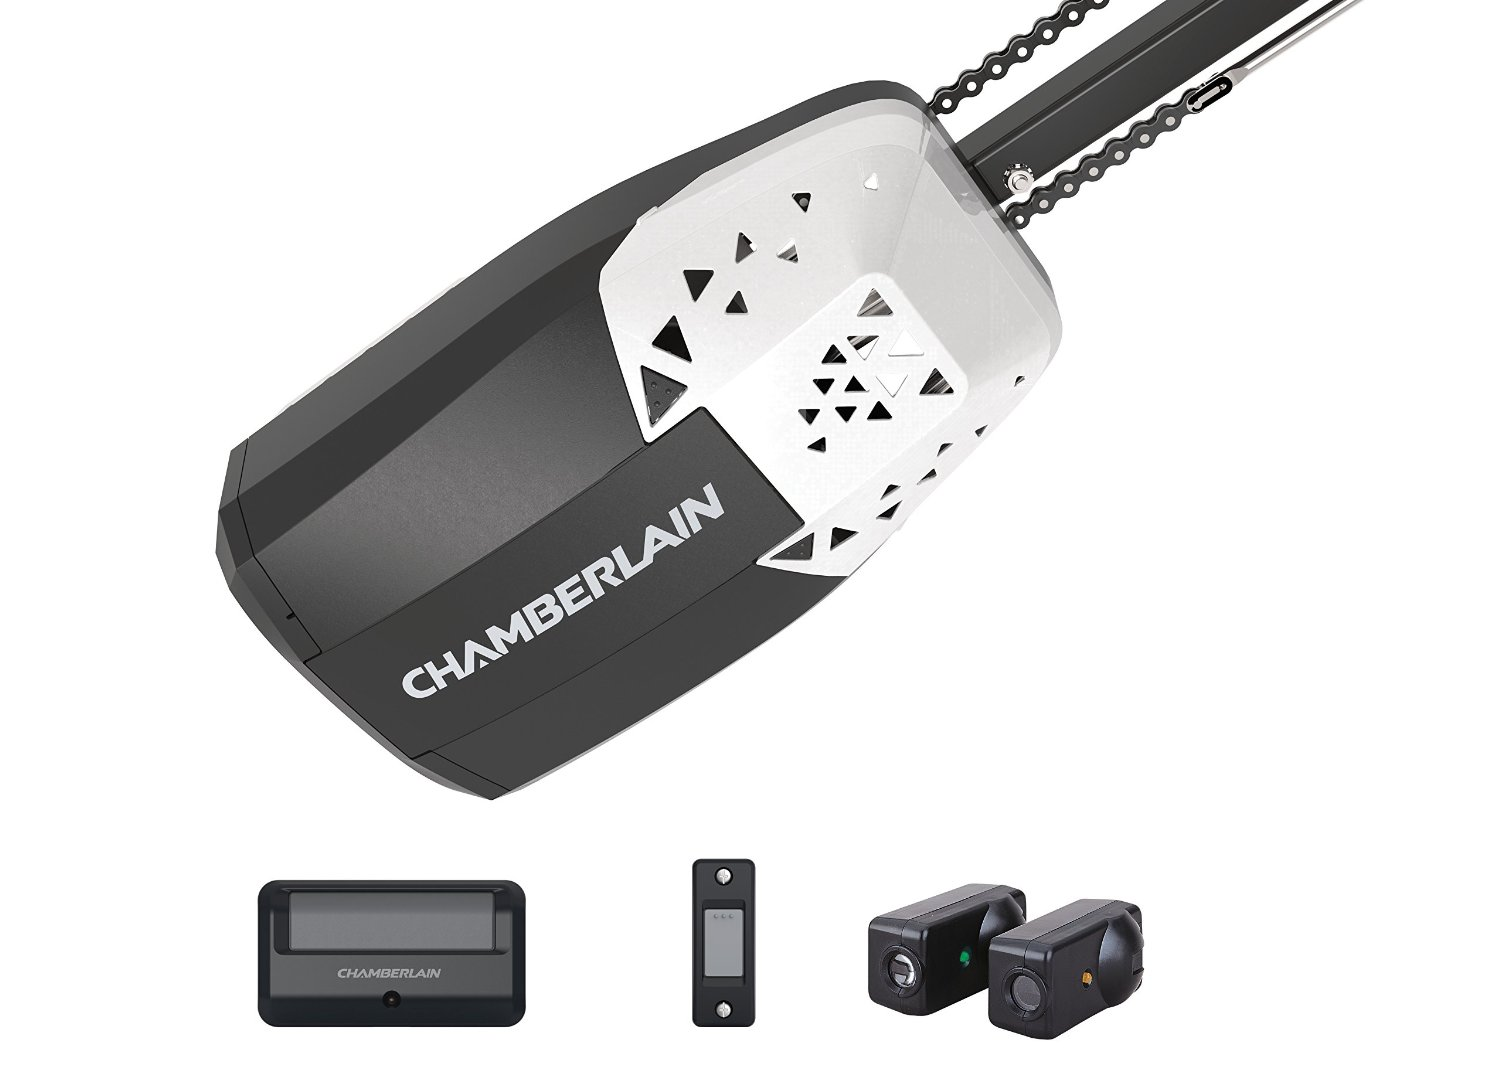 Chamberlain vs Liftmaster garage door openers